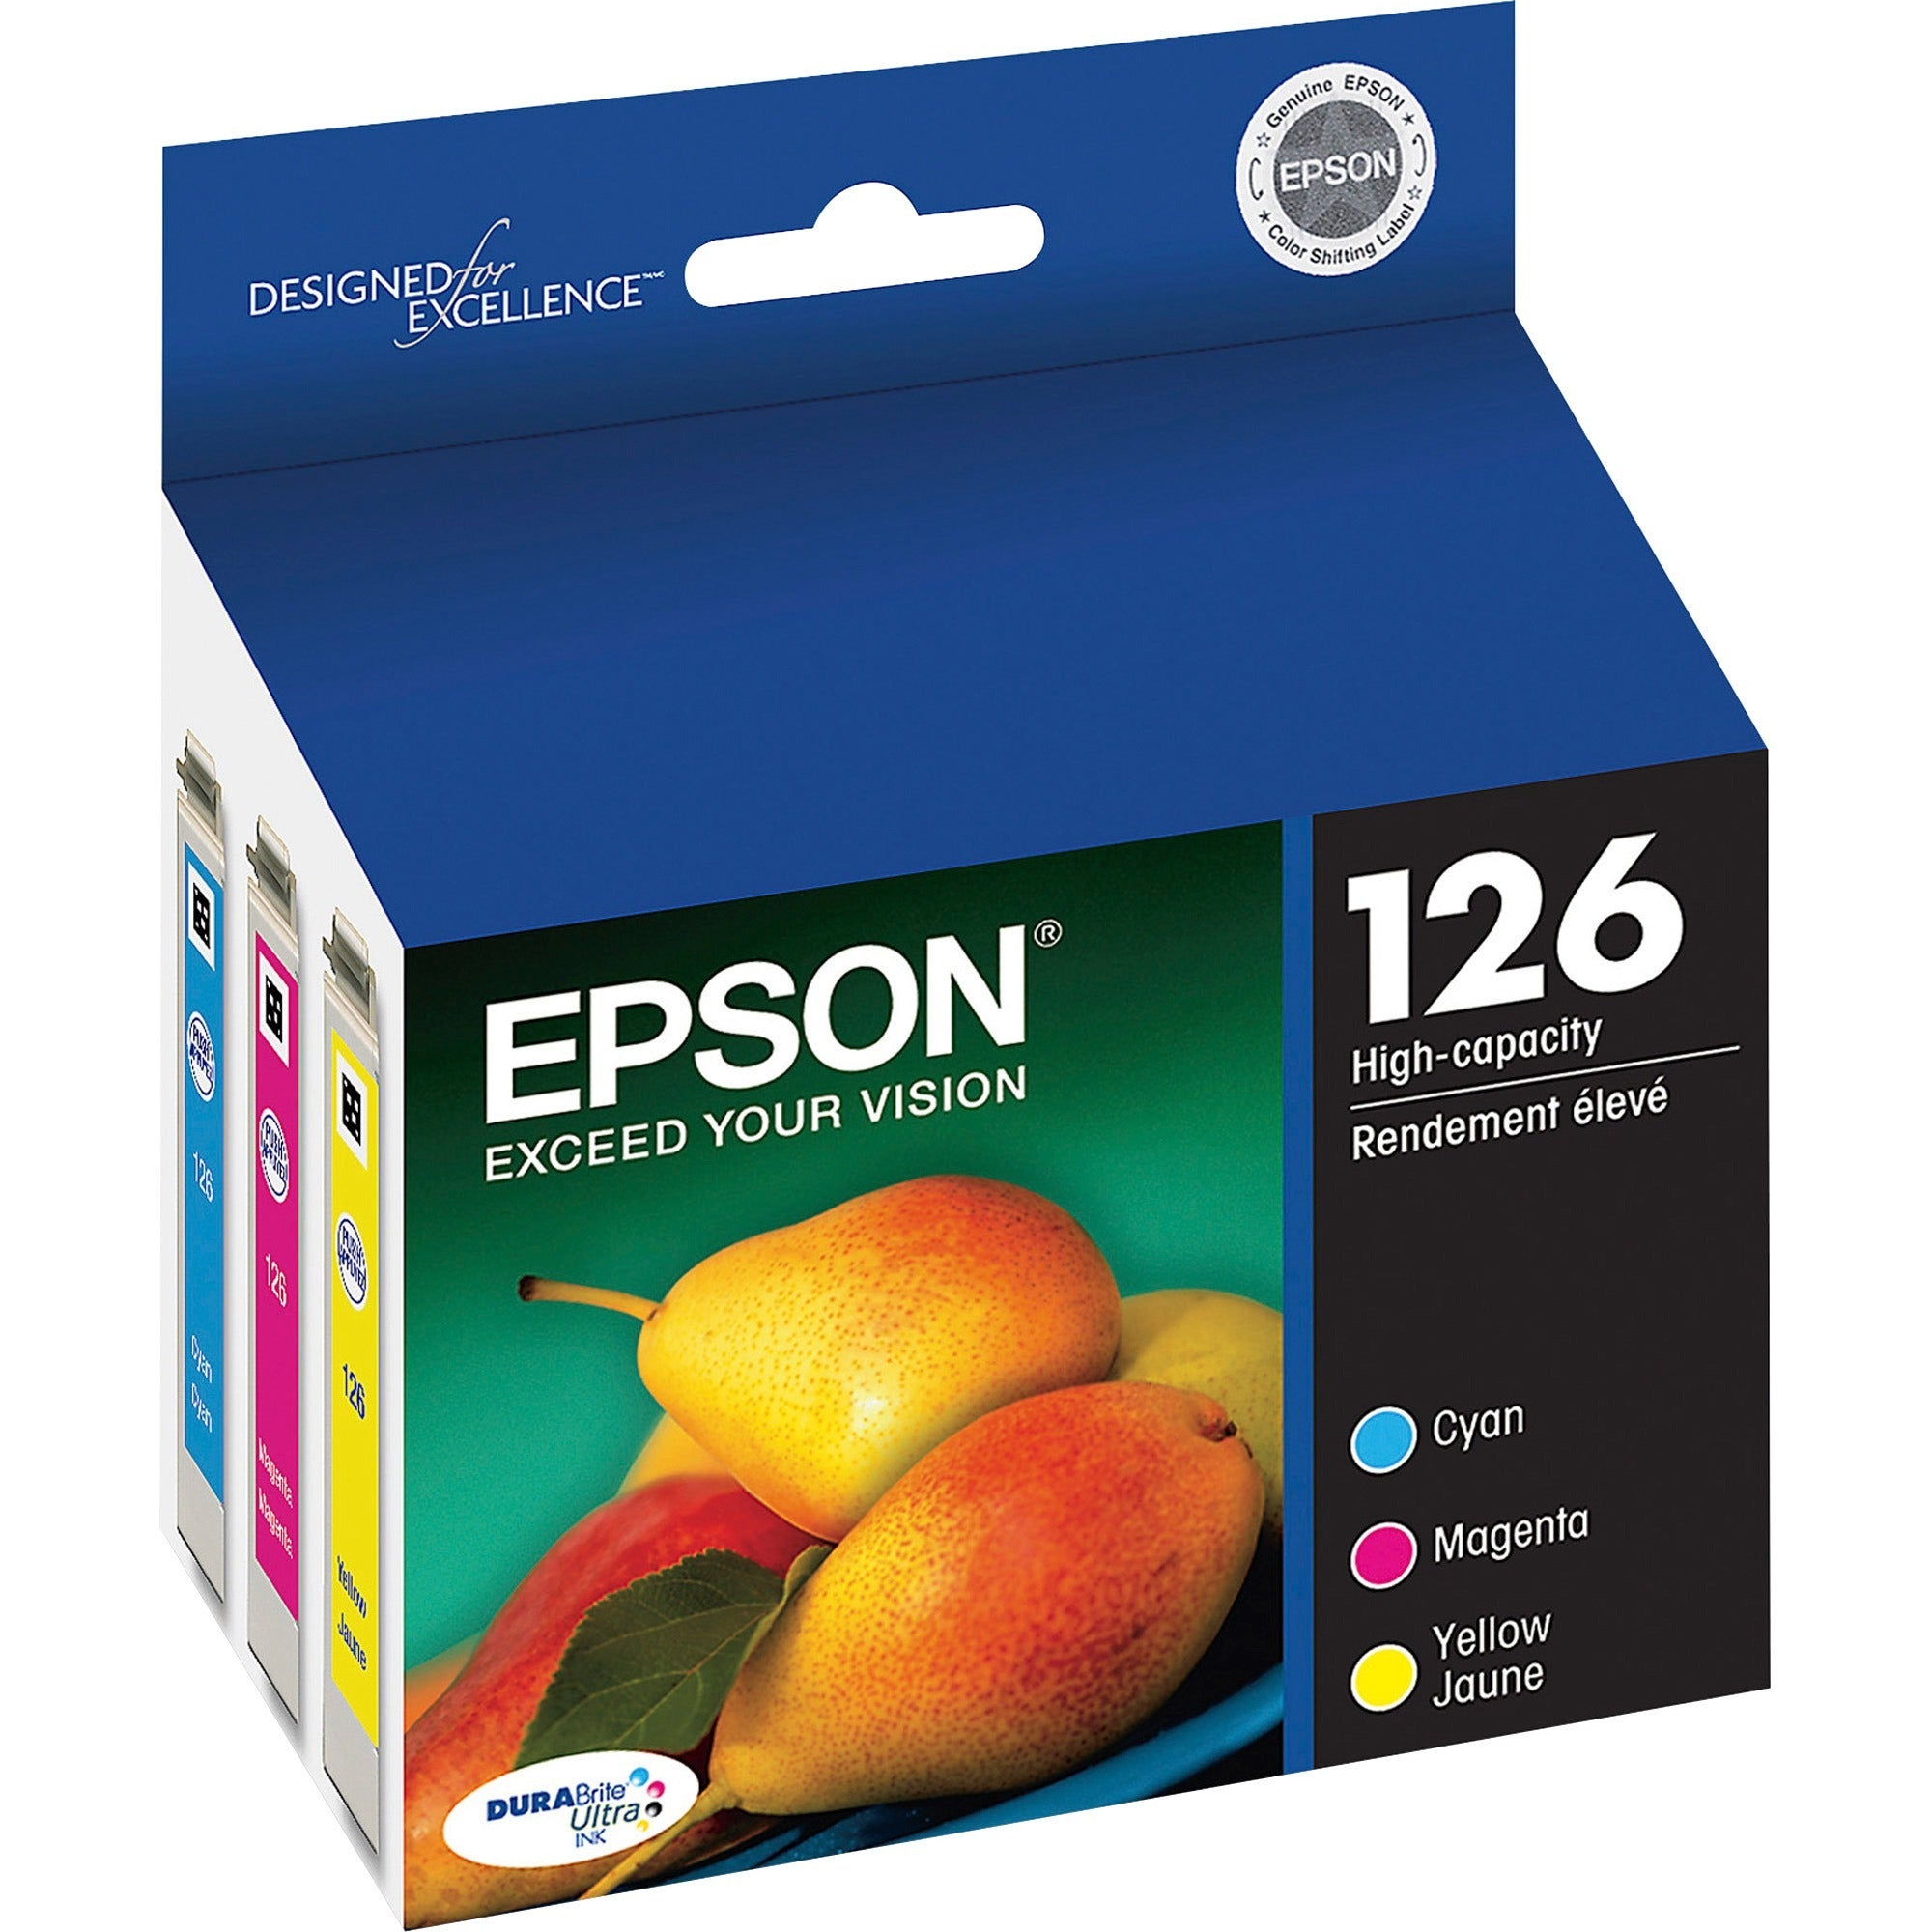 Epson DURABrite No. 126 Original Ink Cartridge